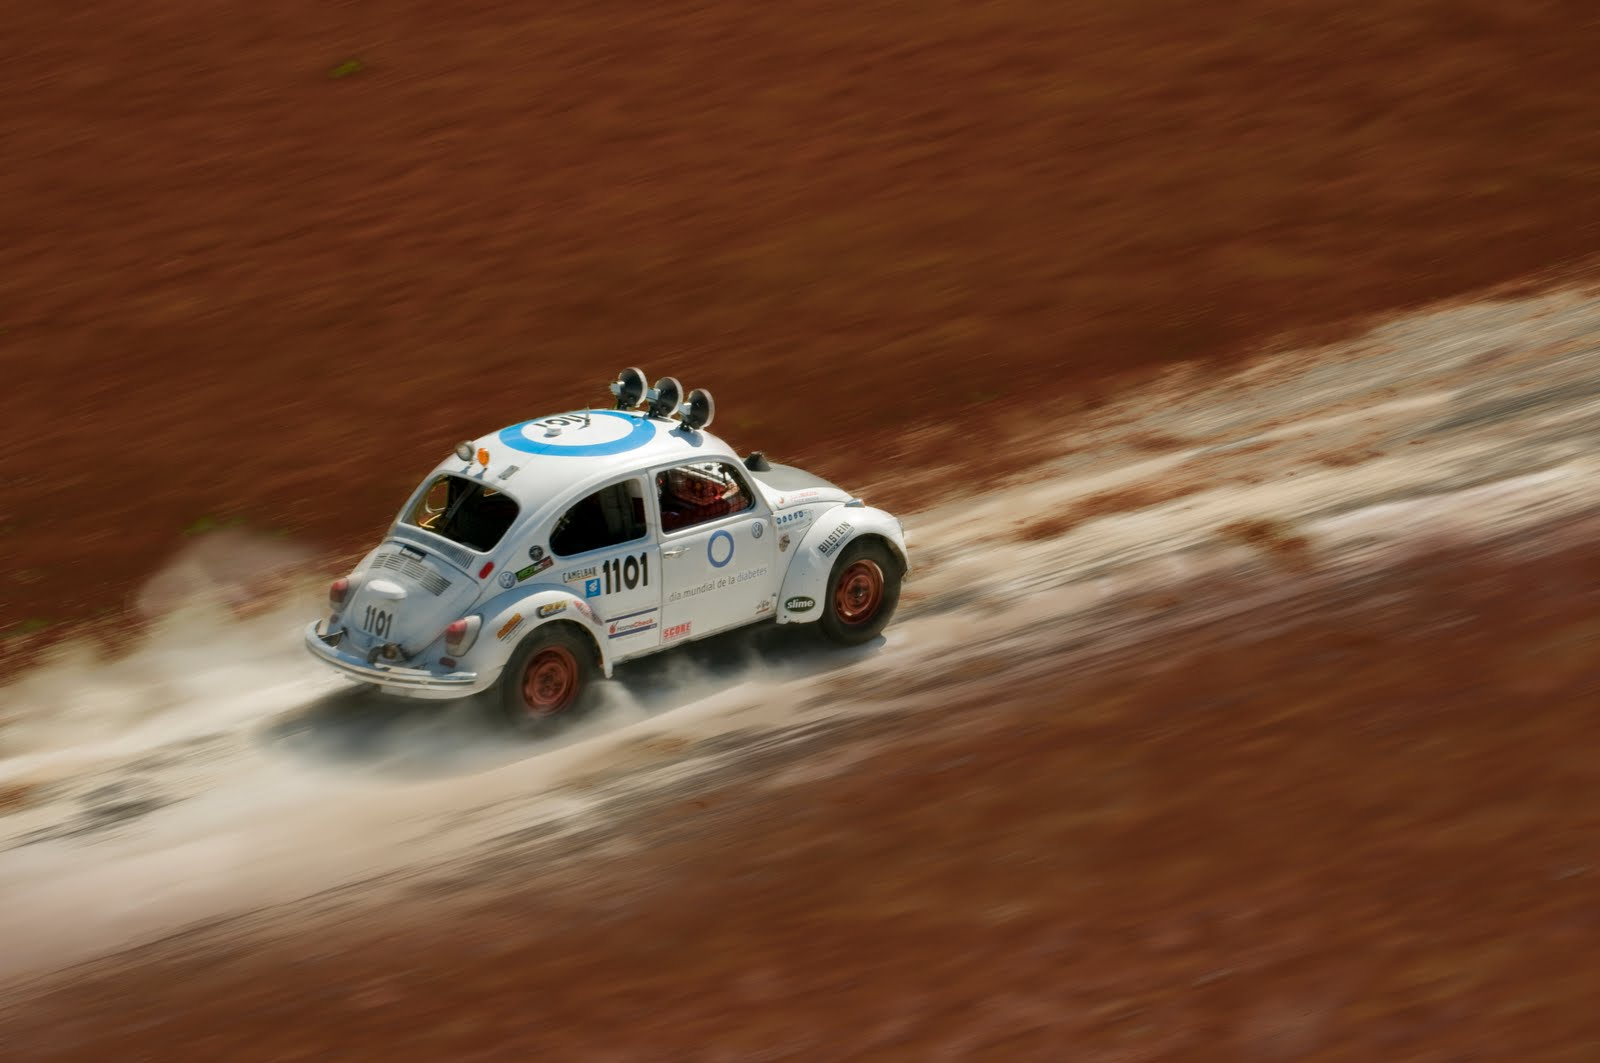 Baja 1000 Wallpaper Downloadwallpaperorg